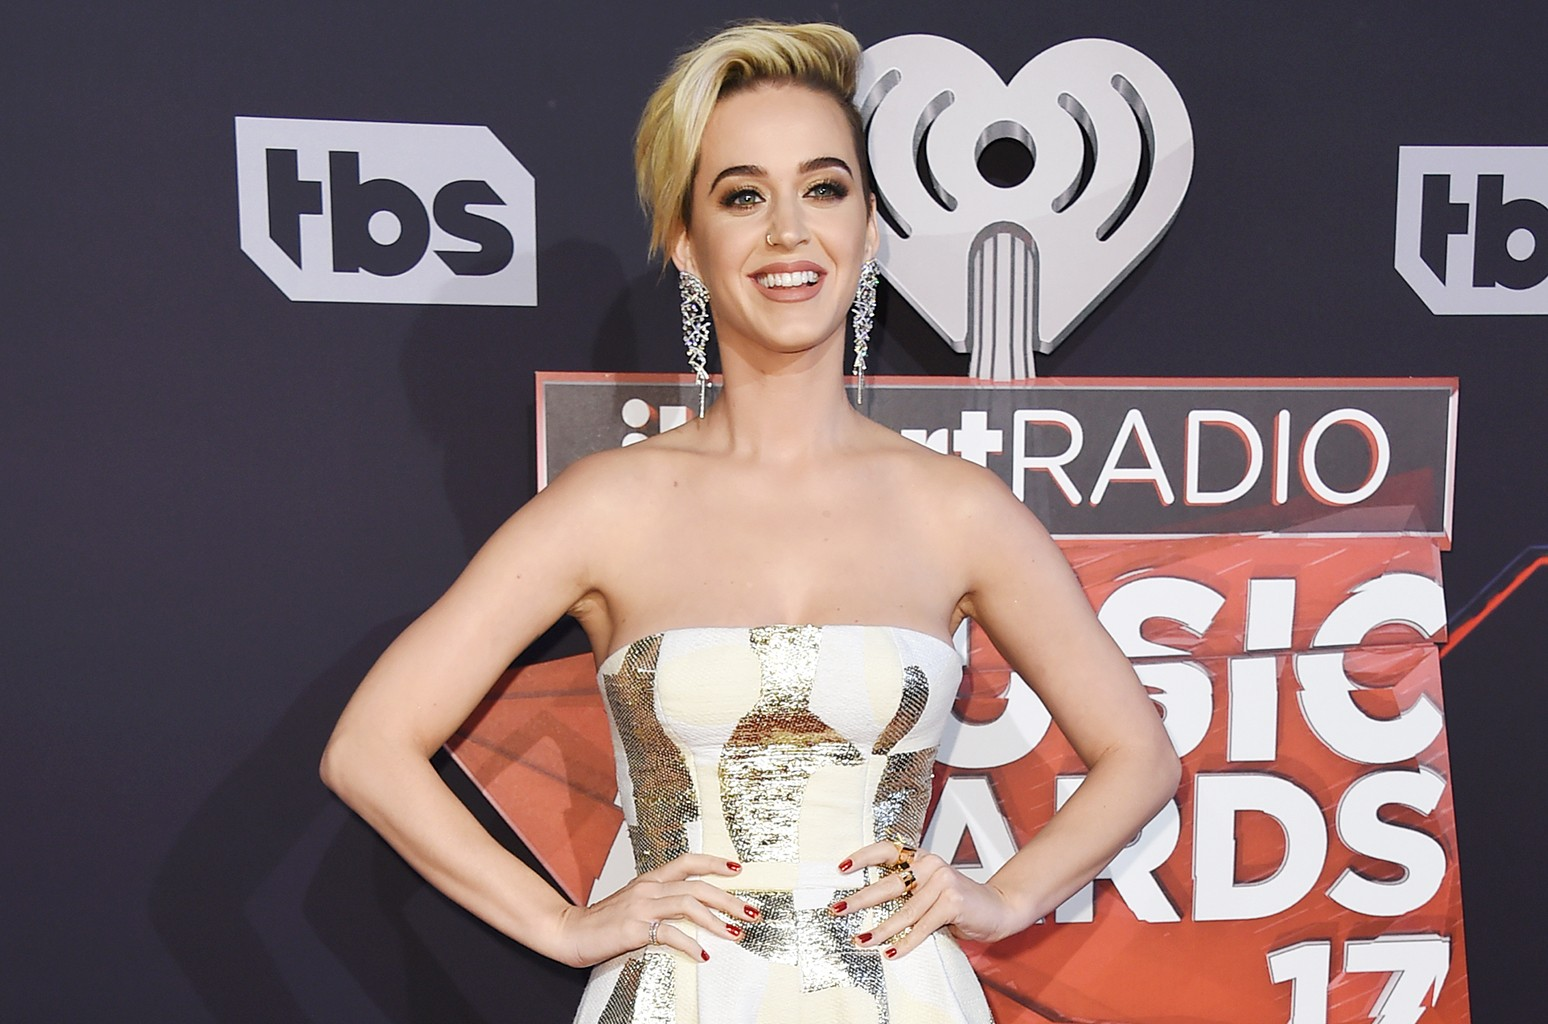 Katy Perry arrives at the iHeartRadio Music Awards at the Forum on March 5, 2017 in Inglewood, Calif.